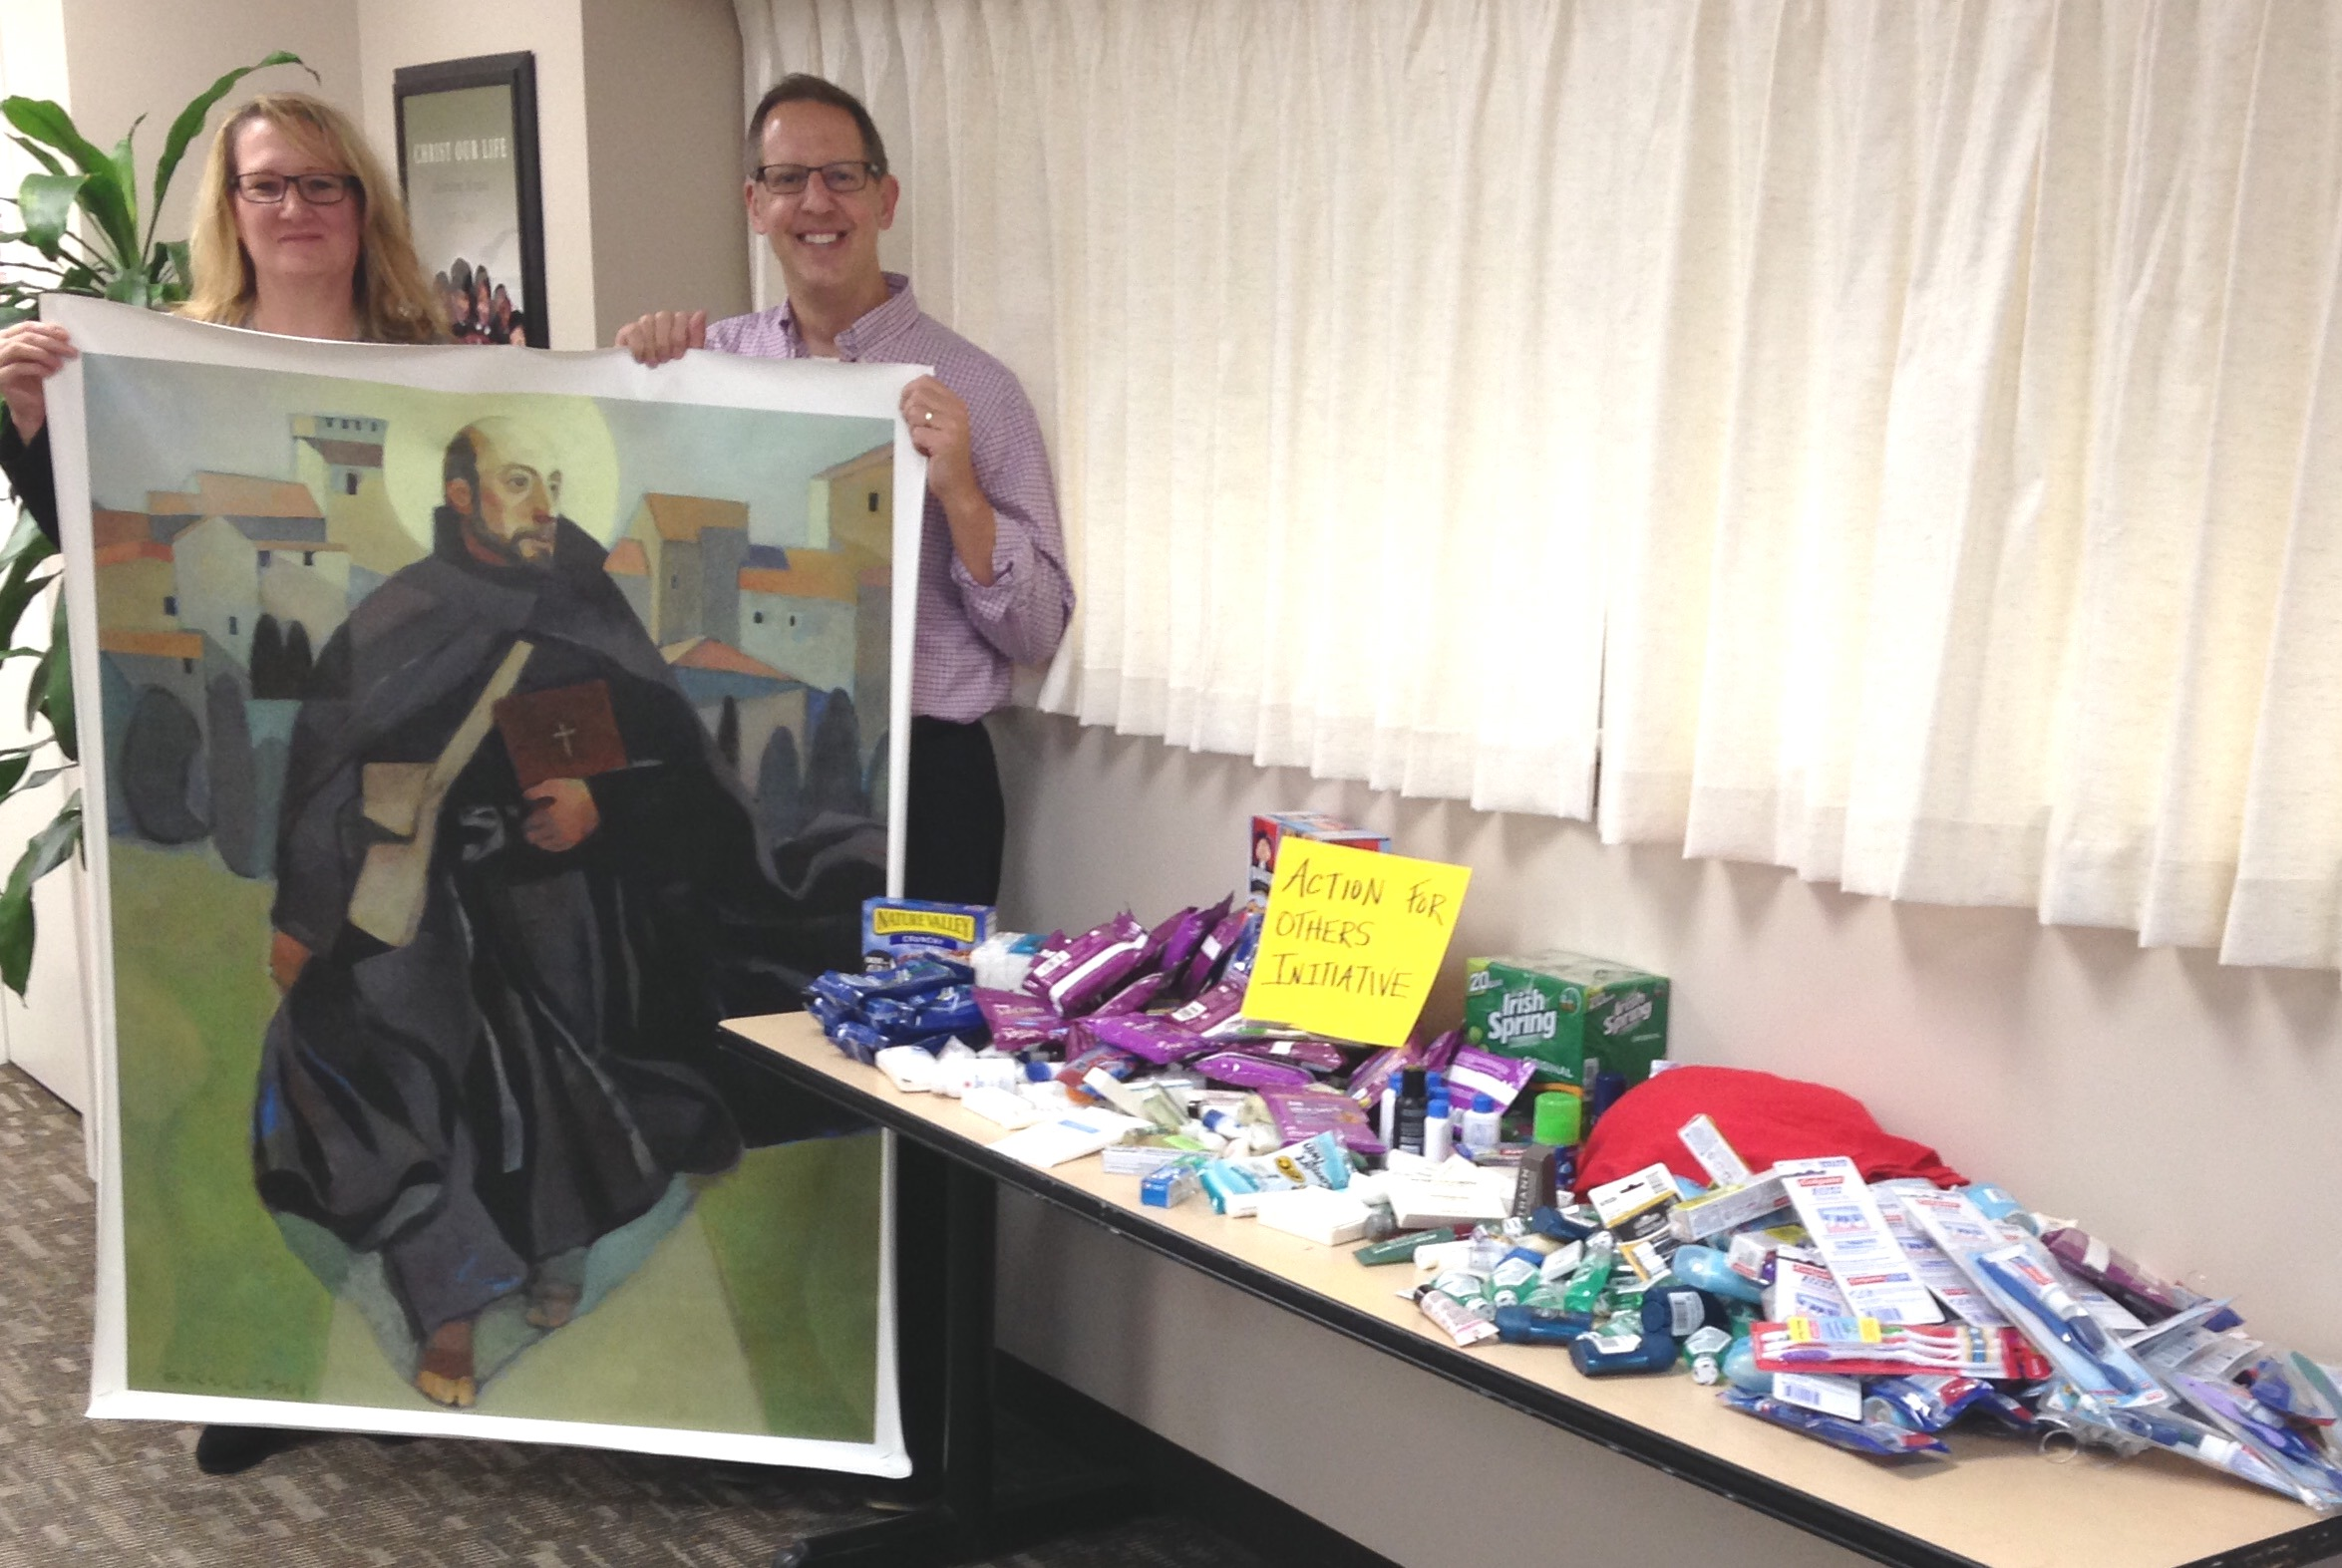 Here I am with St. Ignatius and Linnette Mathys who heads our Loyola Press Action for Others Initiative, alongside donated items for the care packages!